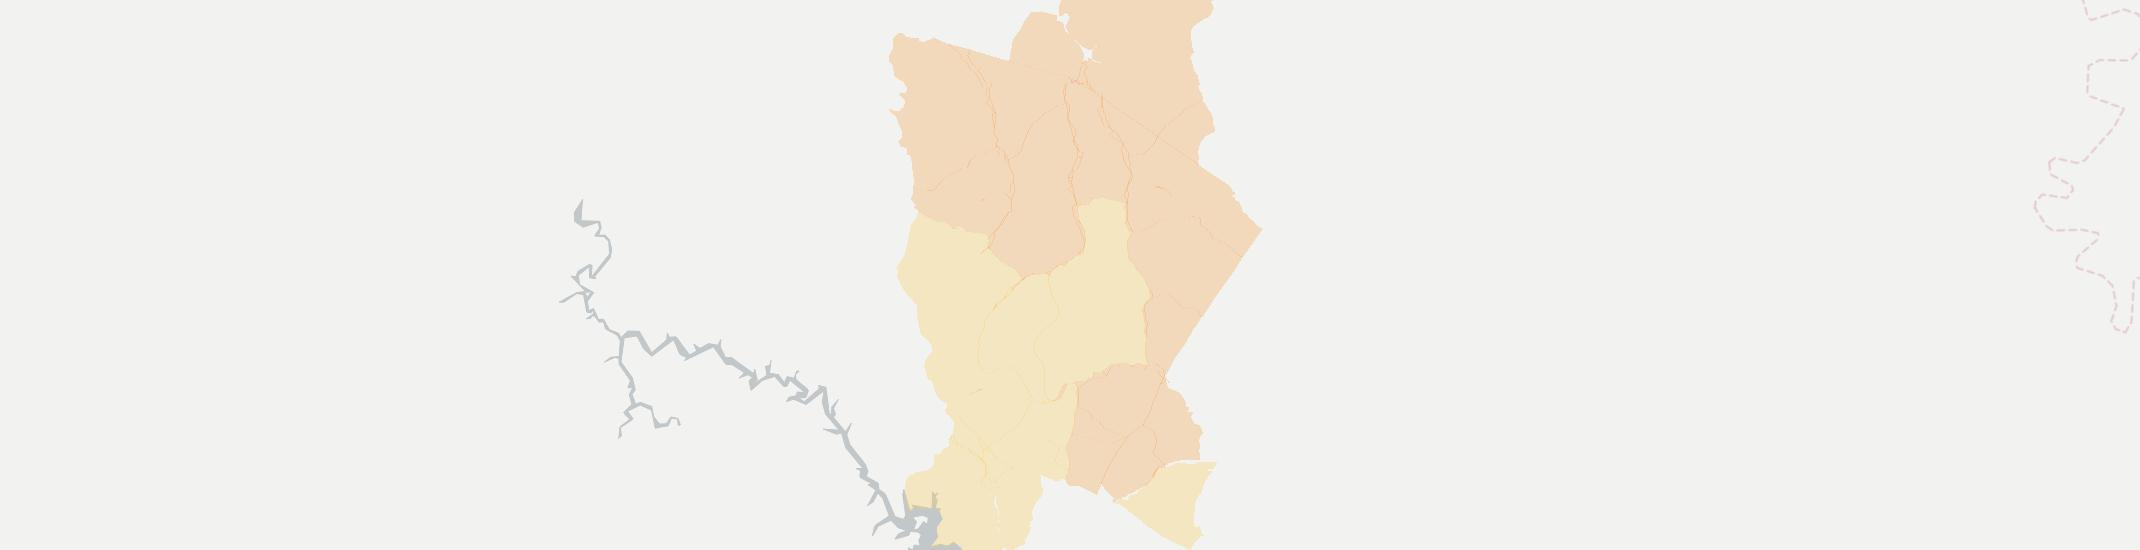 Sitka Internet Competition Map. Click for interactive map.